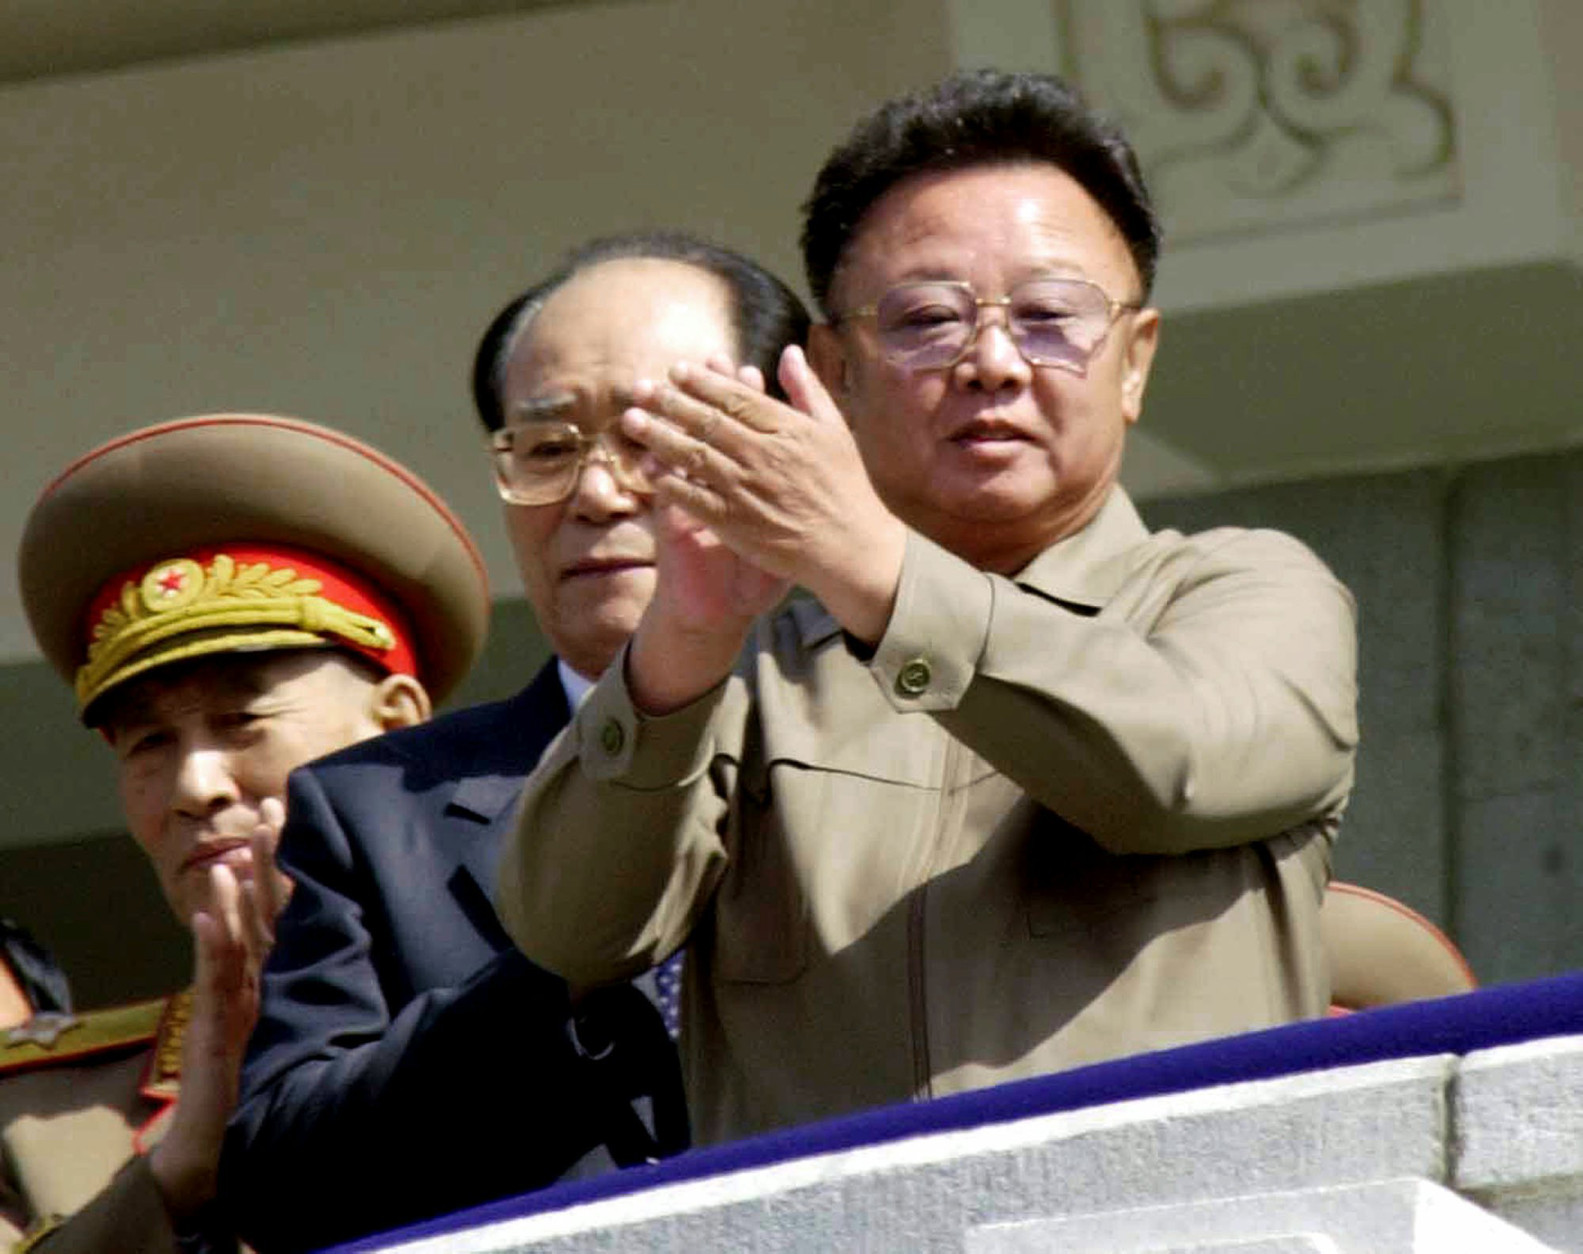 """FILE - In this April 25, 2002 file photo, North Korean leader Kim Jong Il, right, applauds with Kim Yong Nam, president of the People's Congress from the balcony of a building during a military parade, celebrating the 70th anniversary of the founding of North  Korean People's Army in Pyongyang, North Korea. North Korean television announced Monday, Dec. 19, 2011 in a """"special broadcast"""" that its leader Kim Jong Il has died in Pyongyang. (AP Photo/Katsumi Kasahara, File)"""